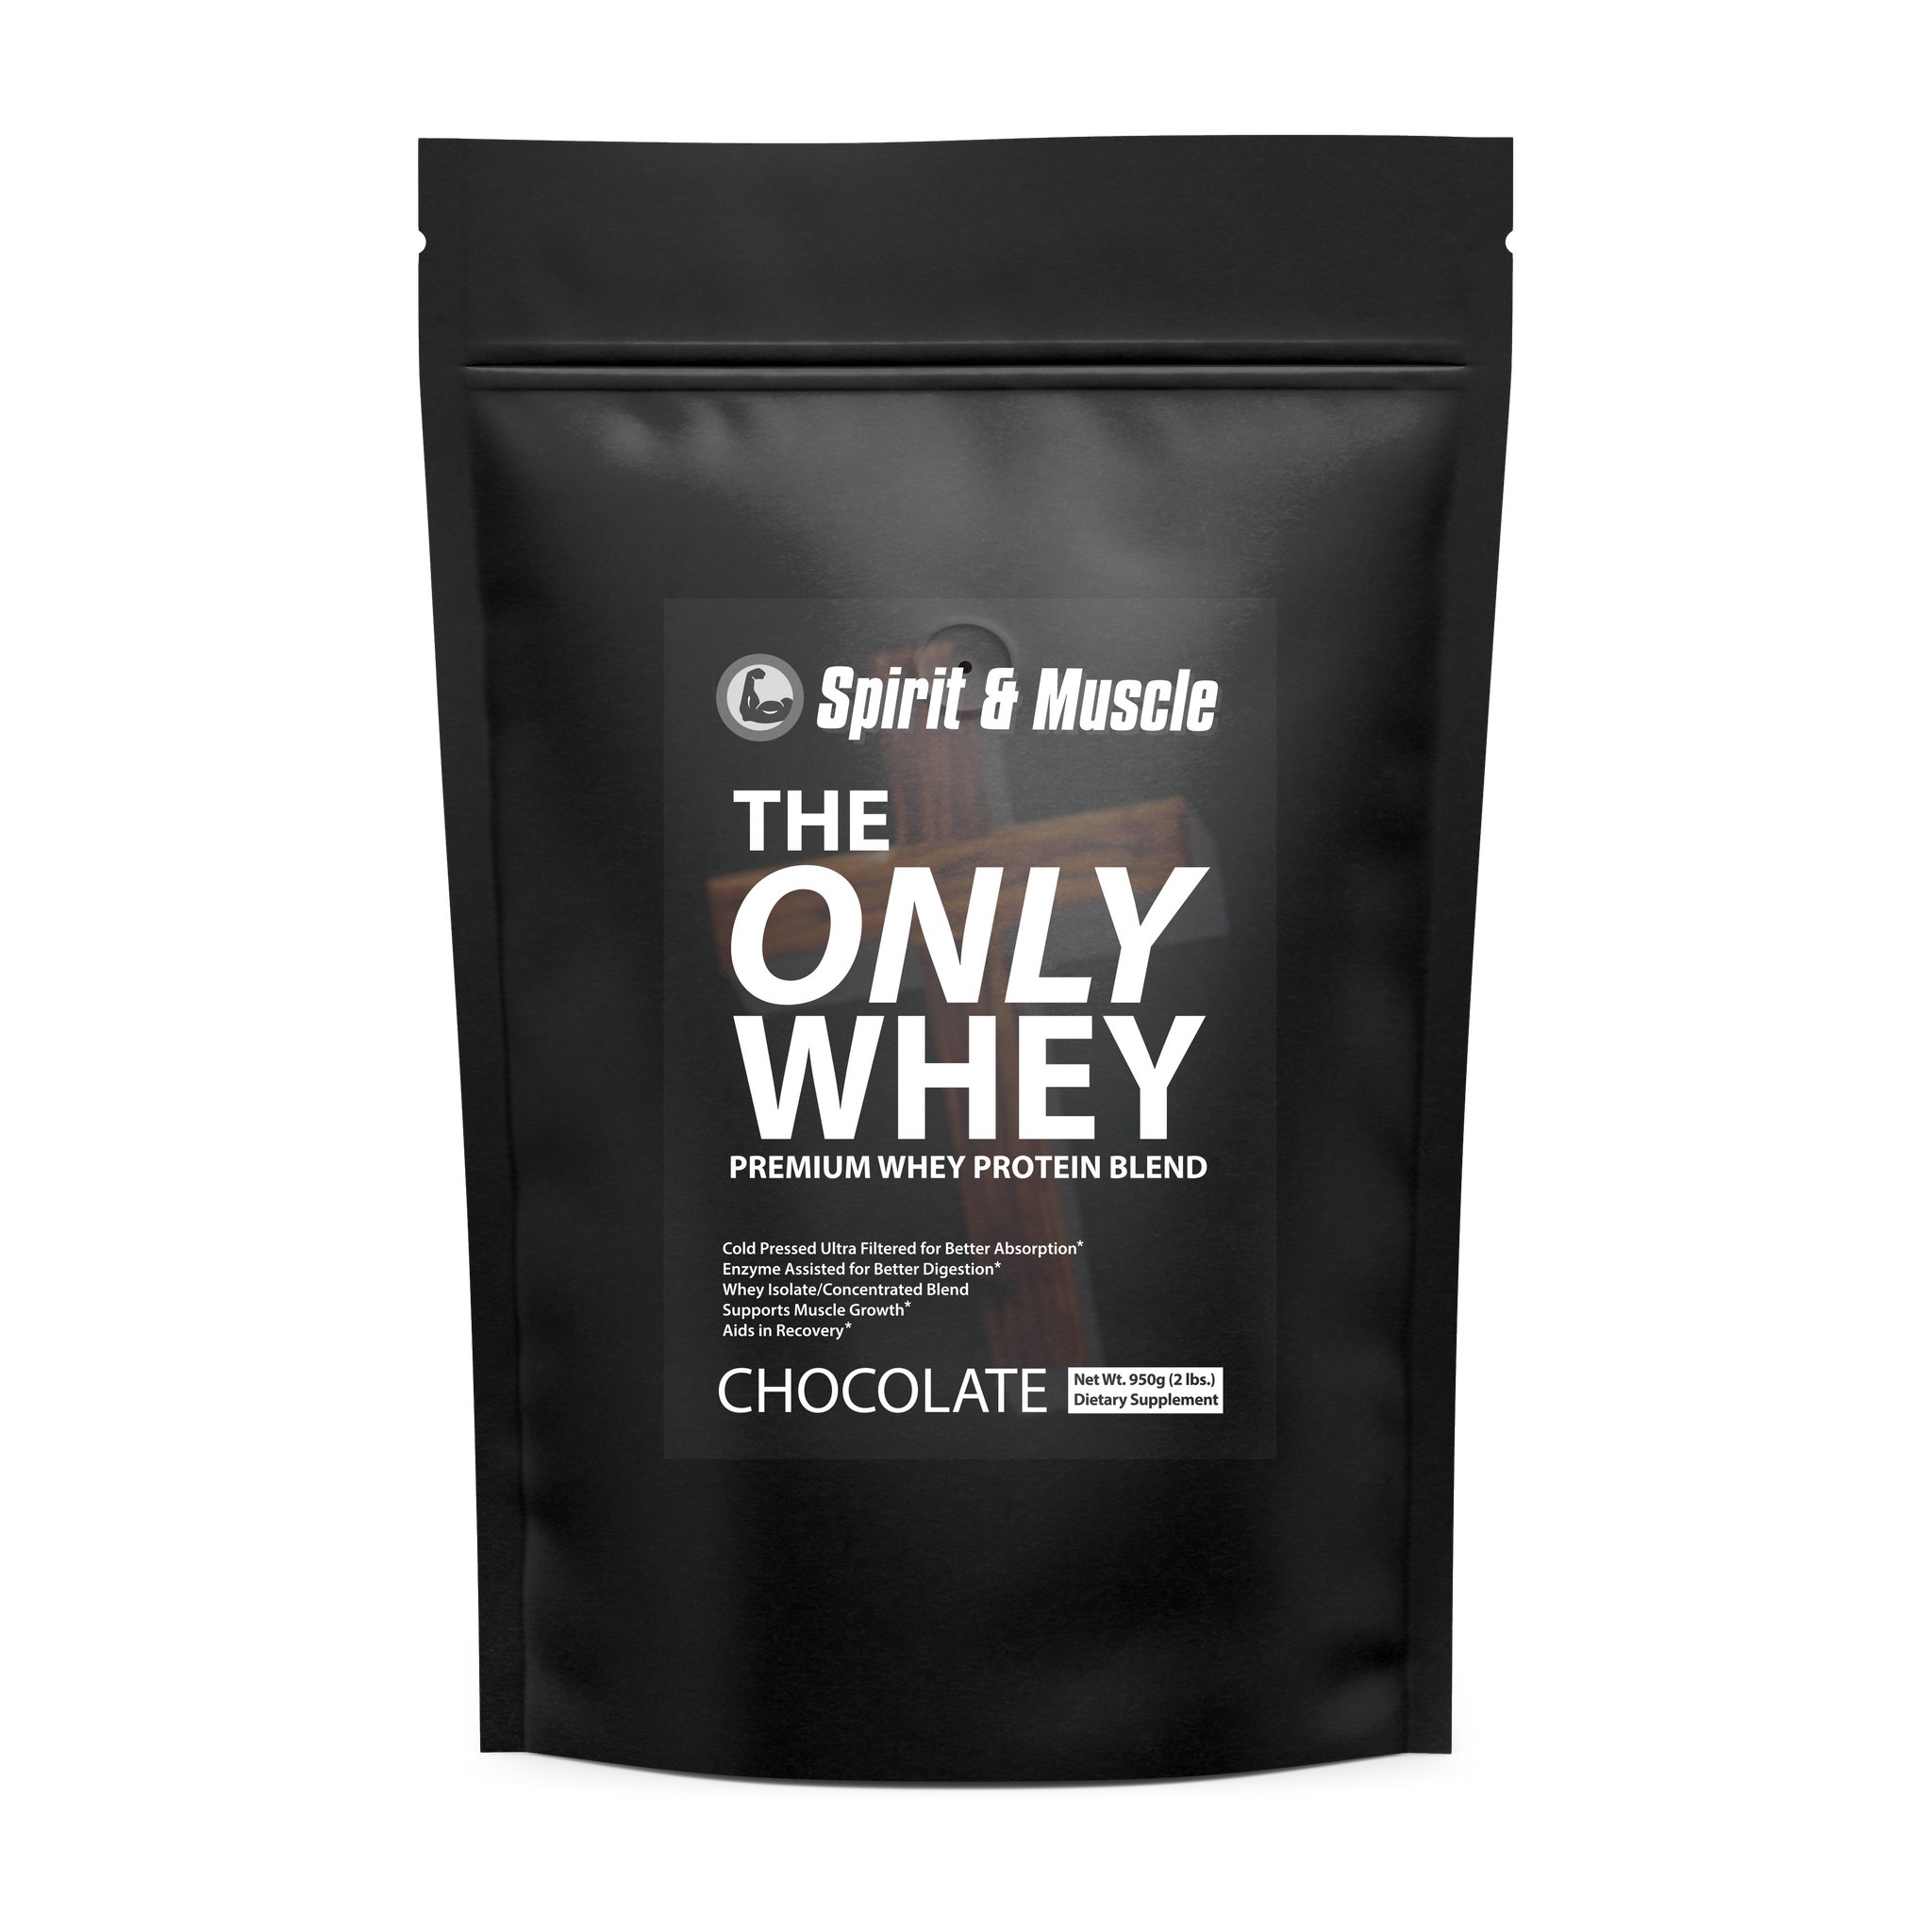 The Only Whey - Chocolate Protein